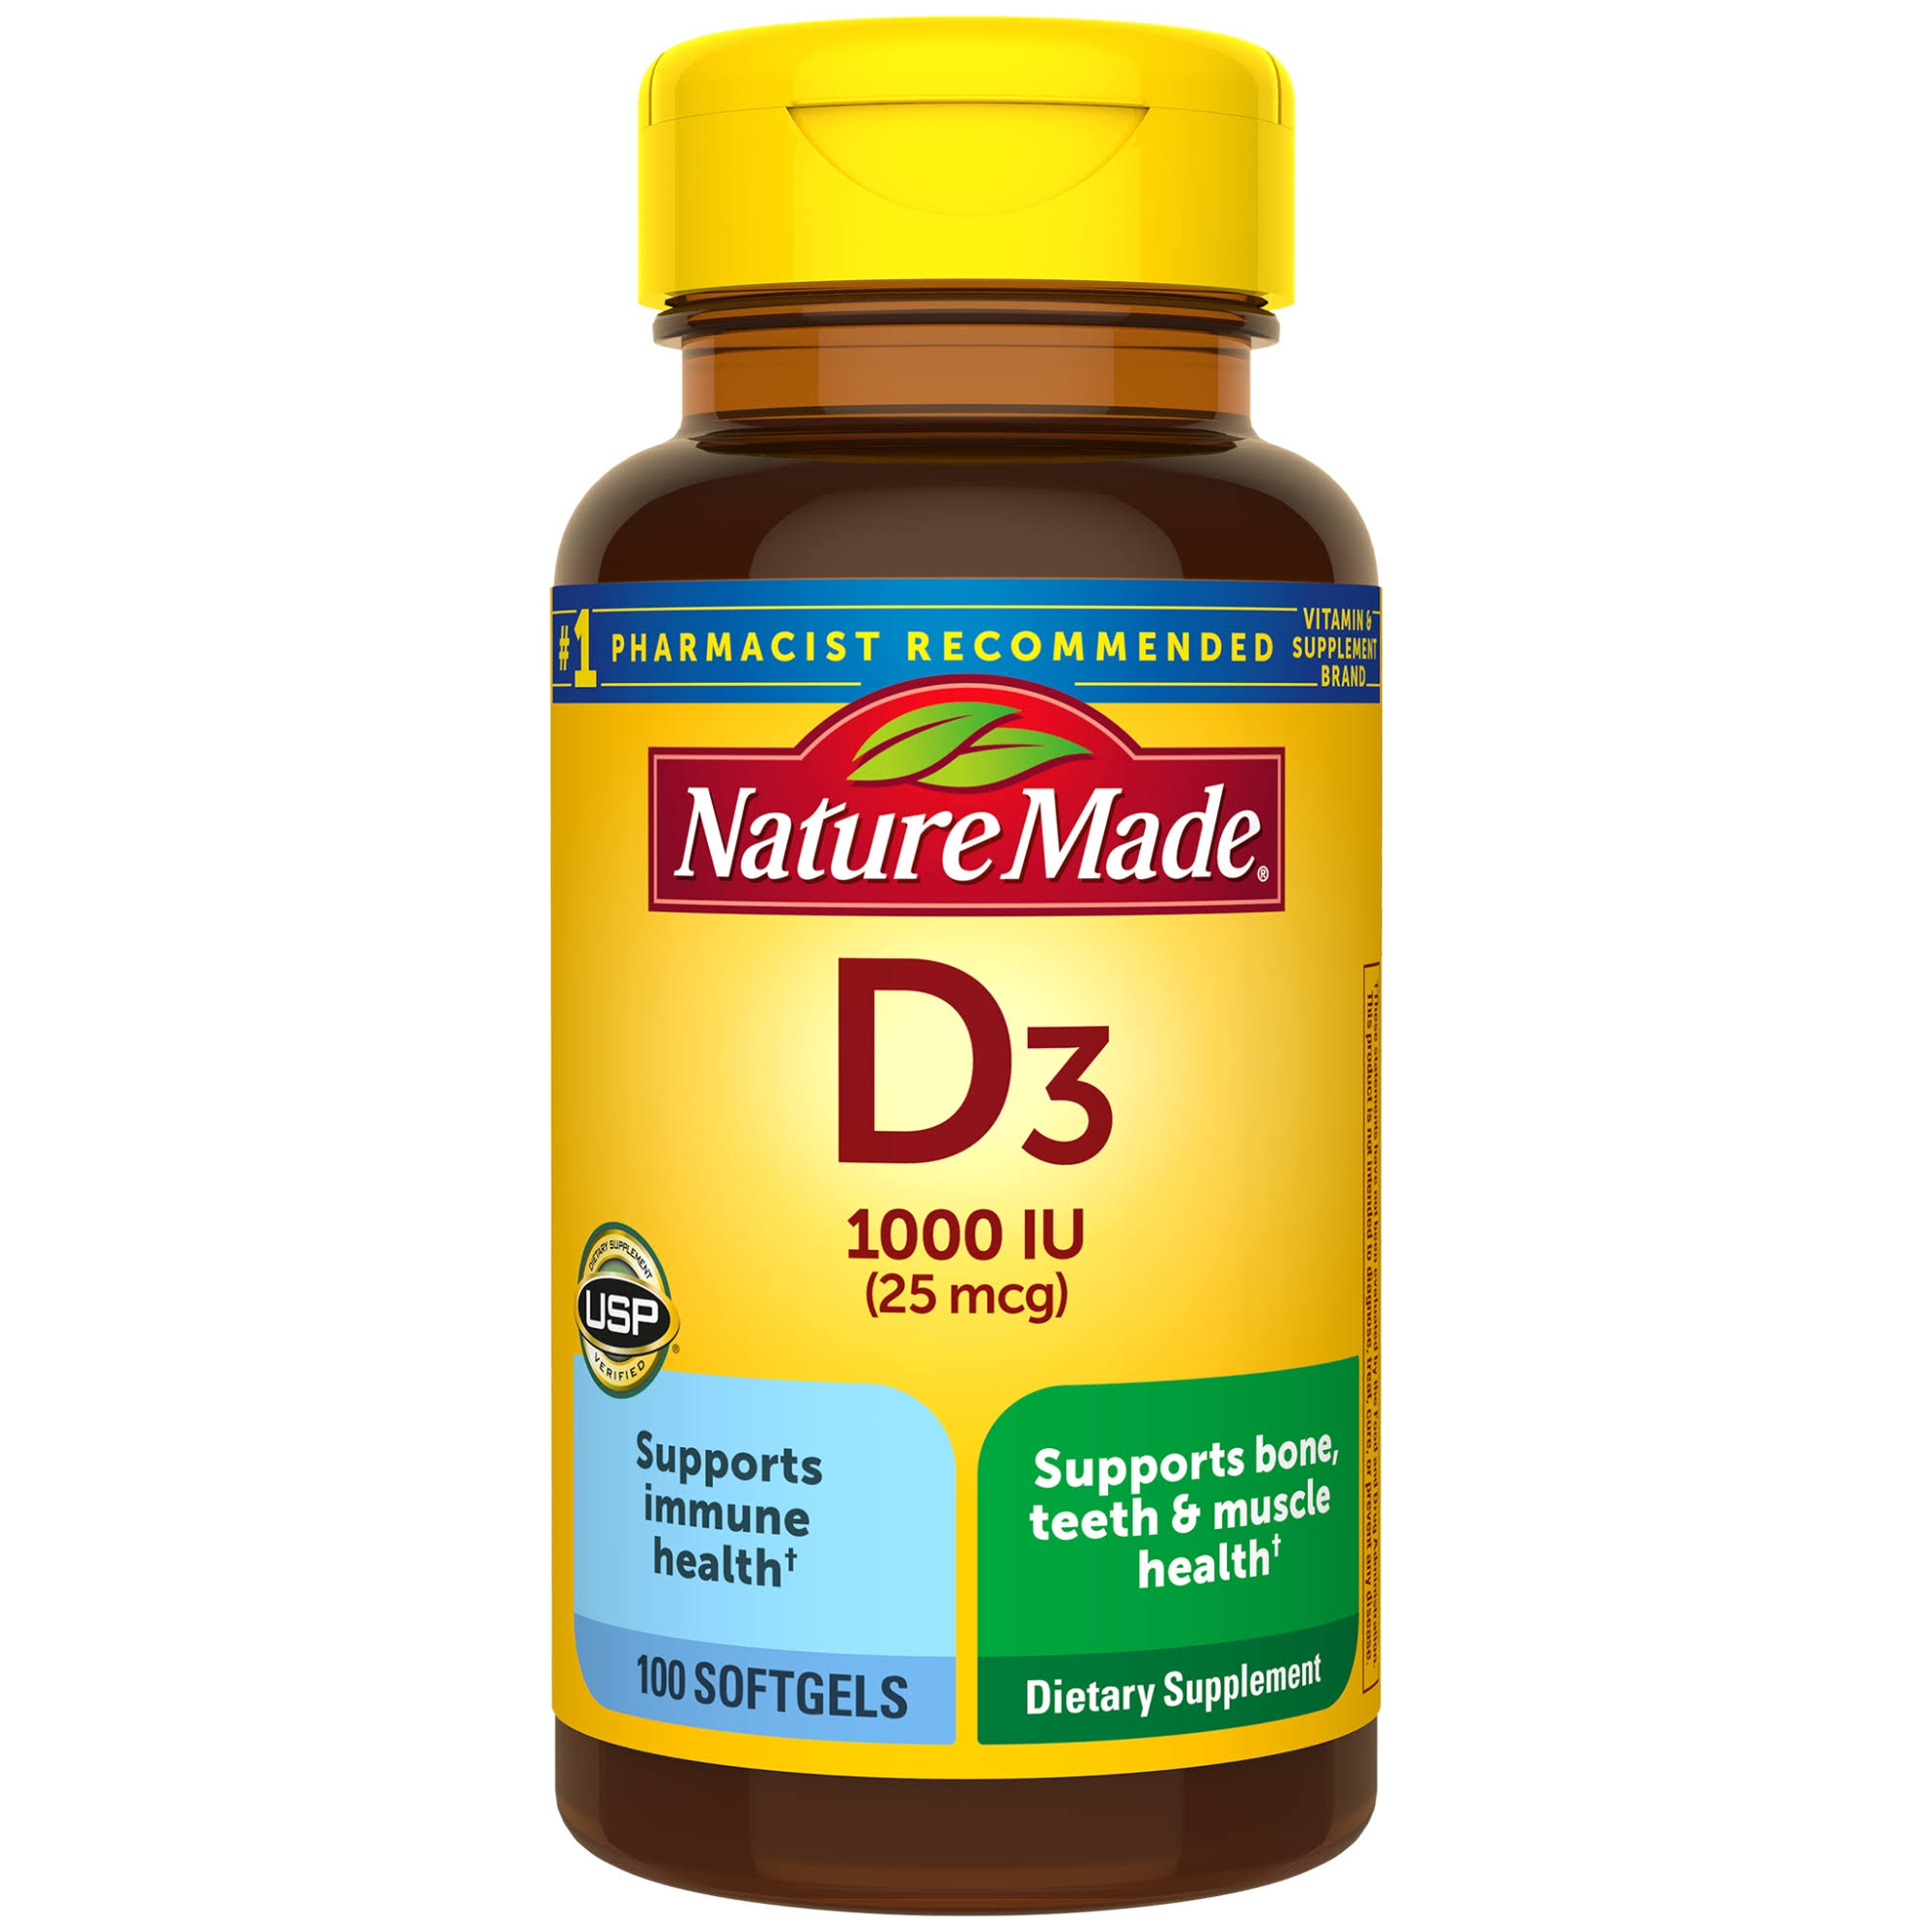 Nature Made: D3 Vitamin D Supplement - 100 Liquid Softgels